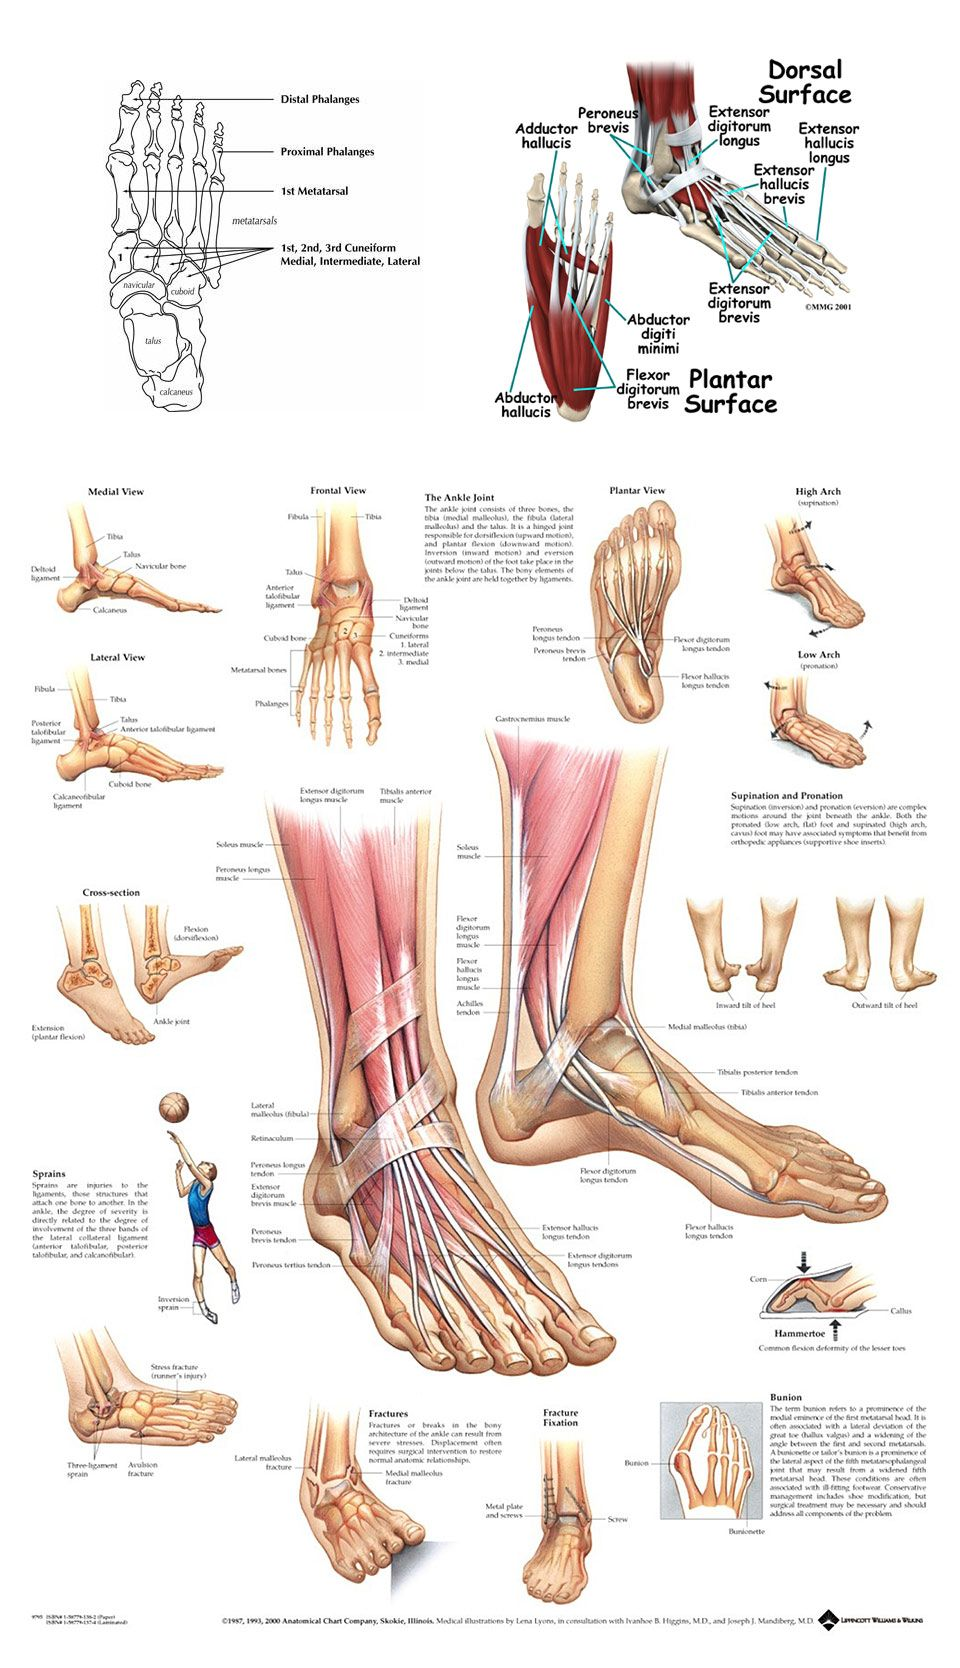 Foot-Anatomy-Bottom-image-cjJO.jpg (960×1668) | Work | Pinterest ...